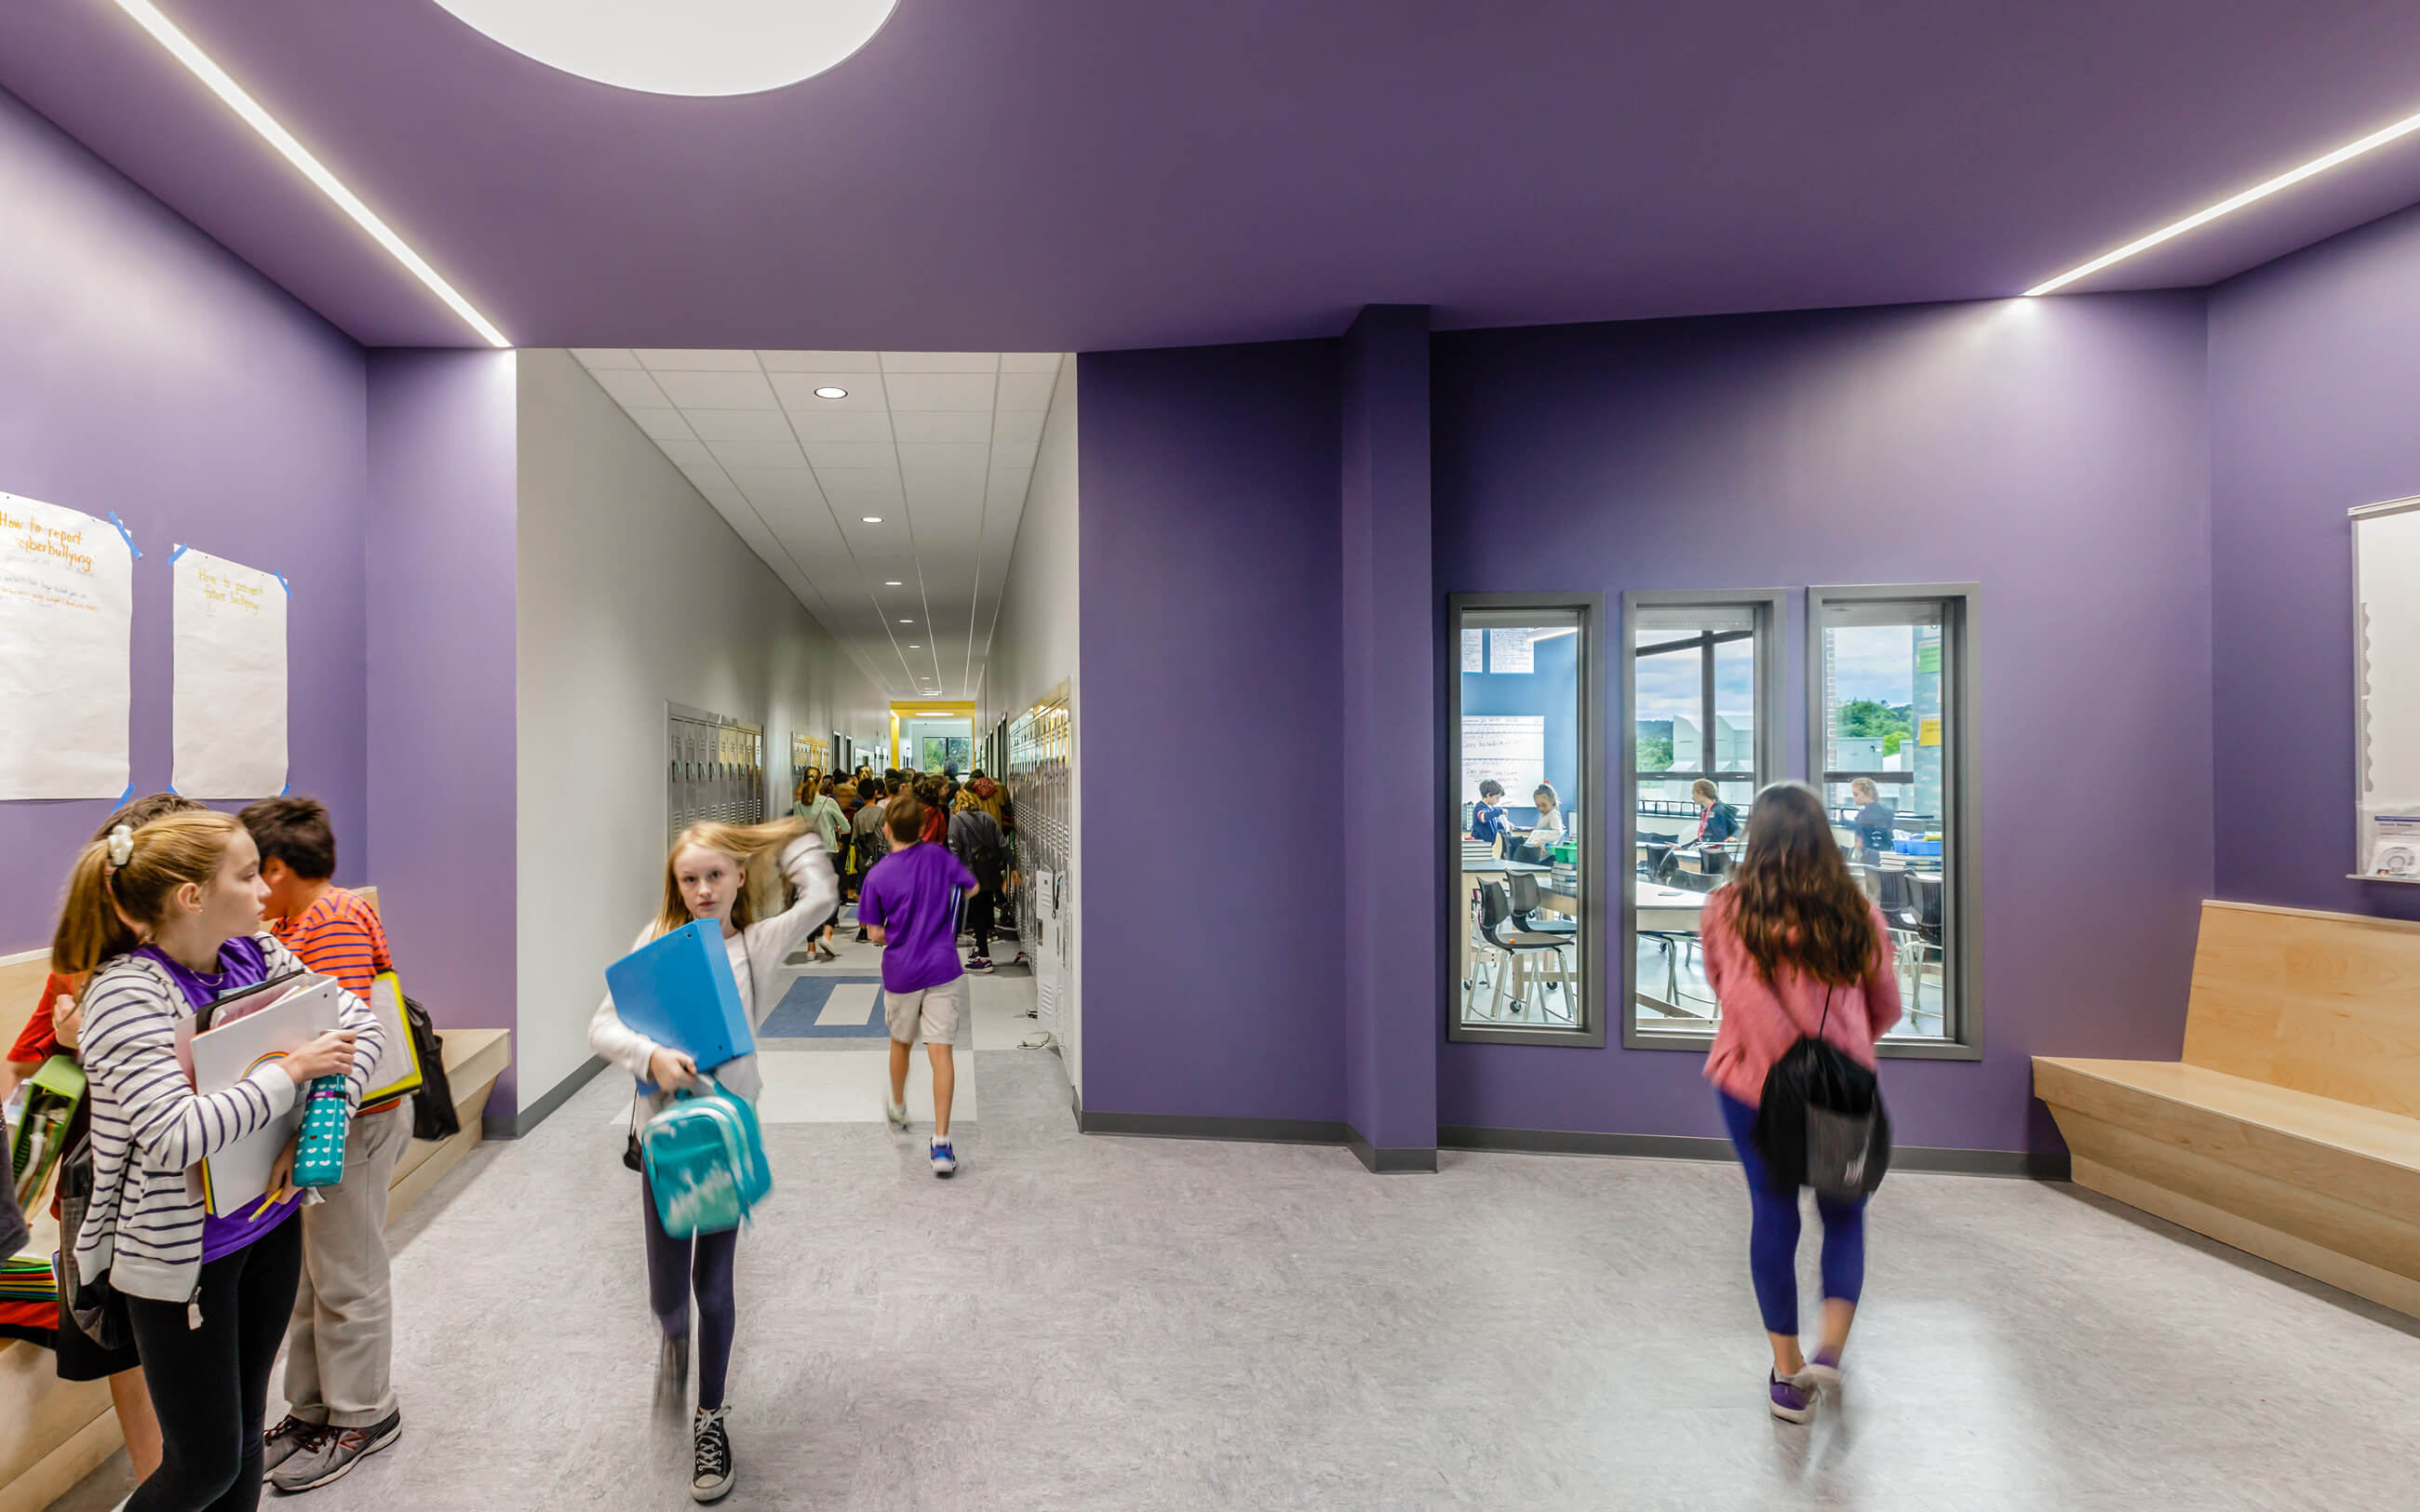 Students in corridor and purple breakout space, with views into adjacent classroom.